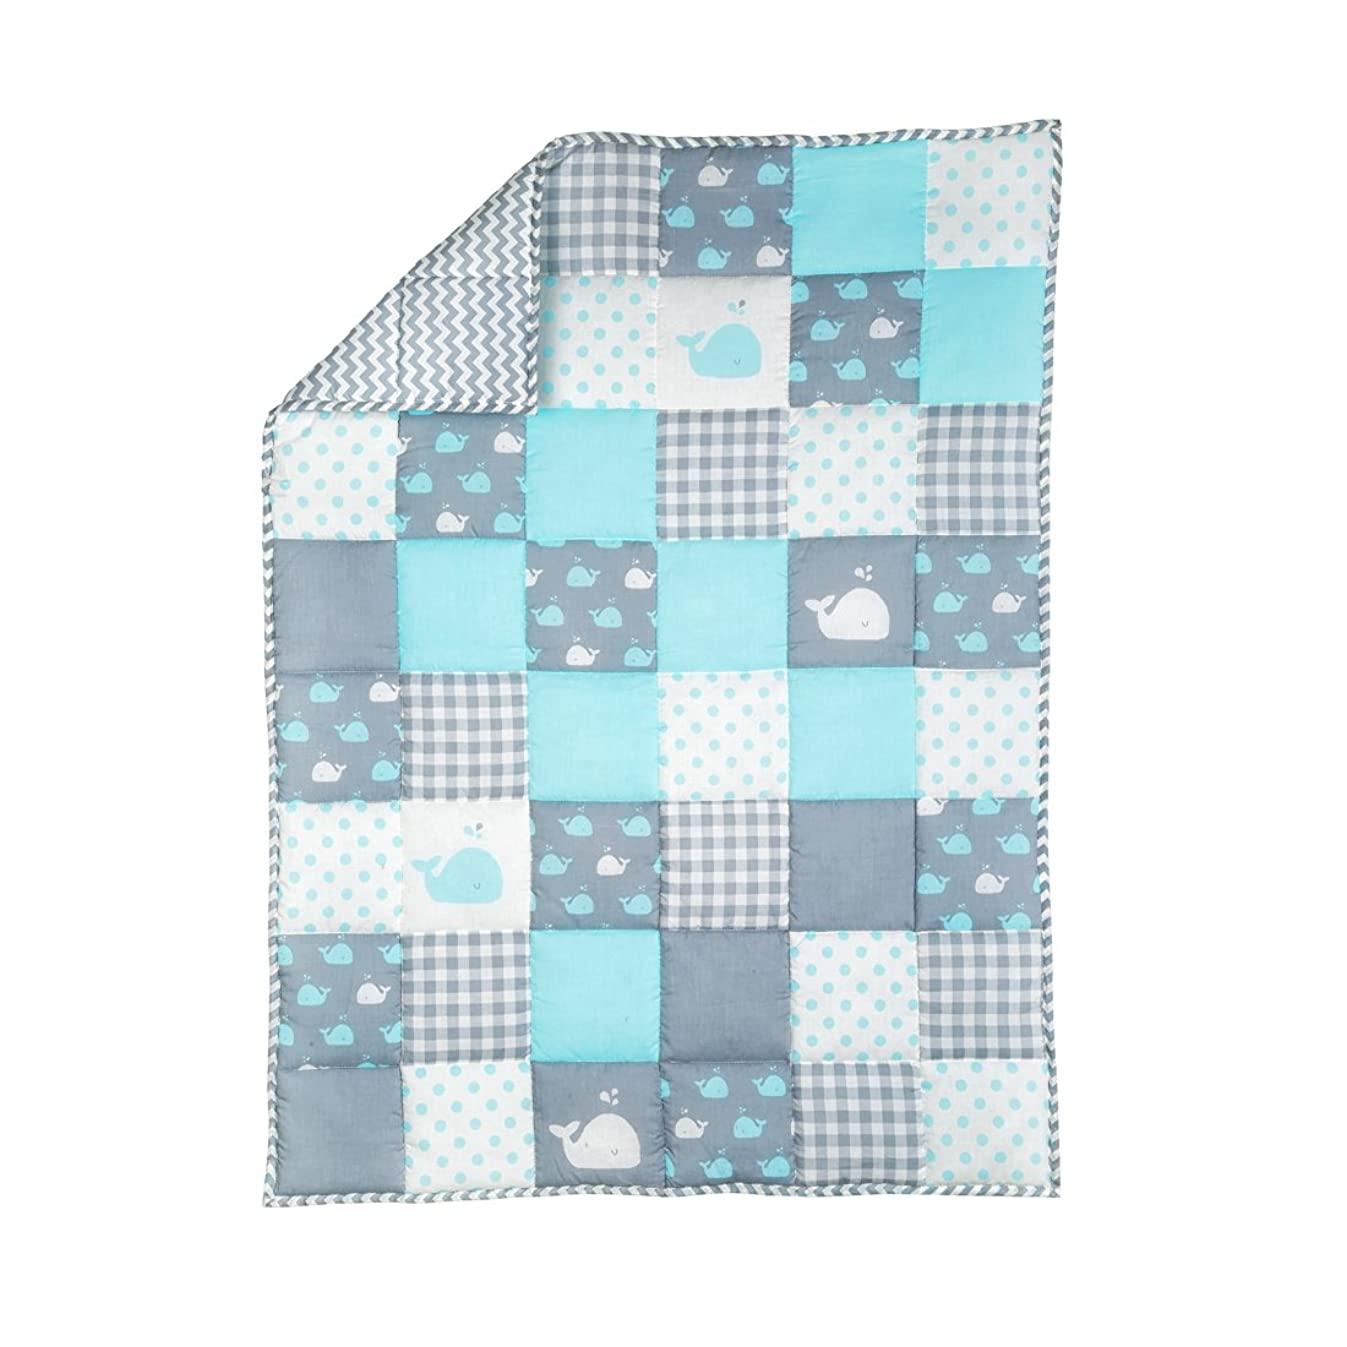 Plush Toddler Blanket - Soft Cot Comforter for Boys and Girls Pure Cotton Baby Cradle Quilt - Baby Blue - 38 X 50 Inches